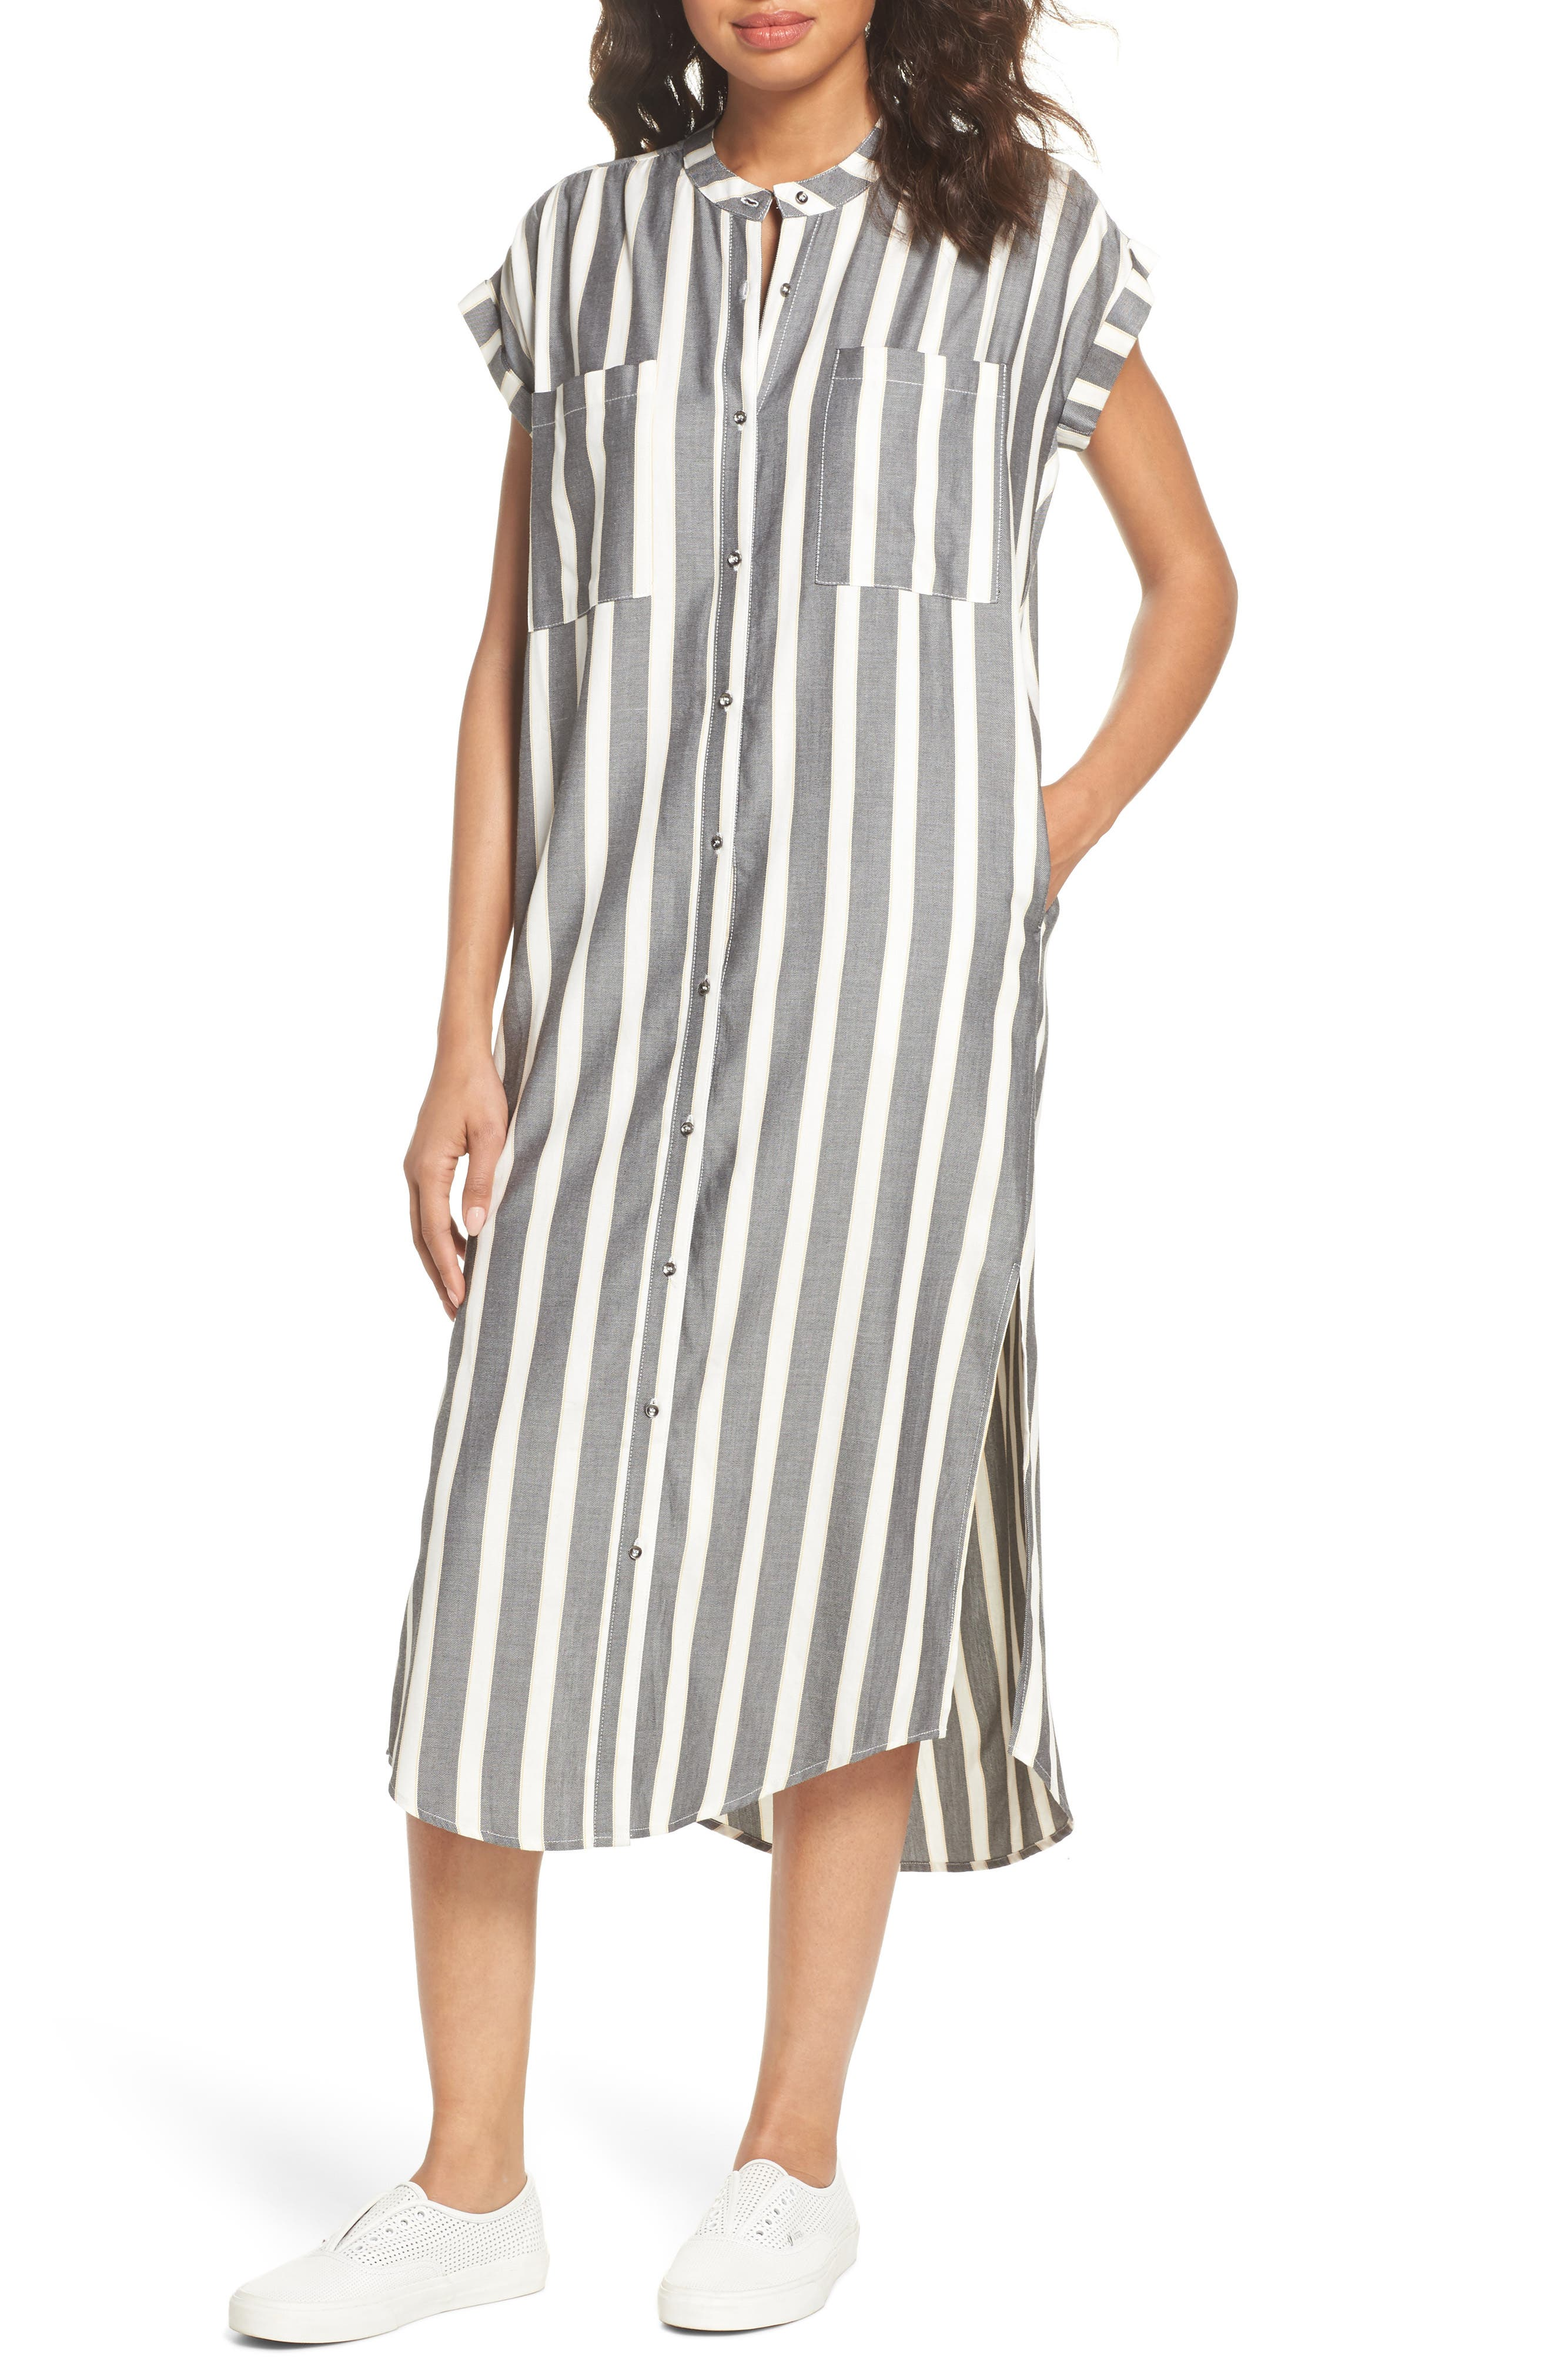 Haze Shirtdress,                             Main thumbnail 1, color,                             Black With Cream Stripe